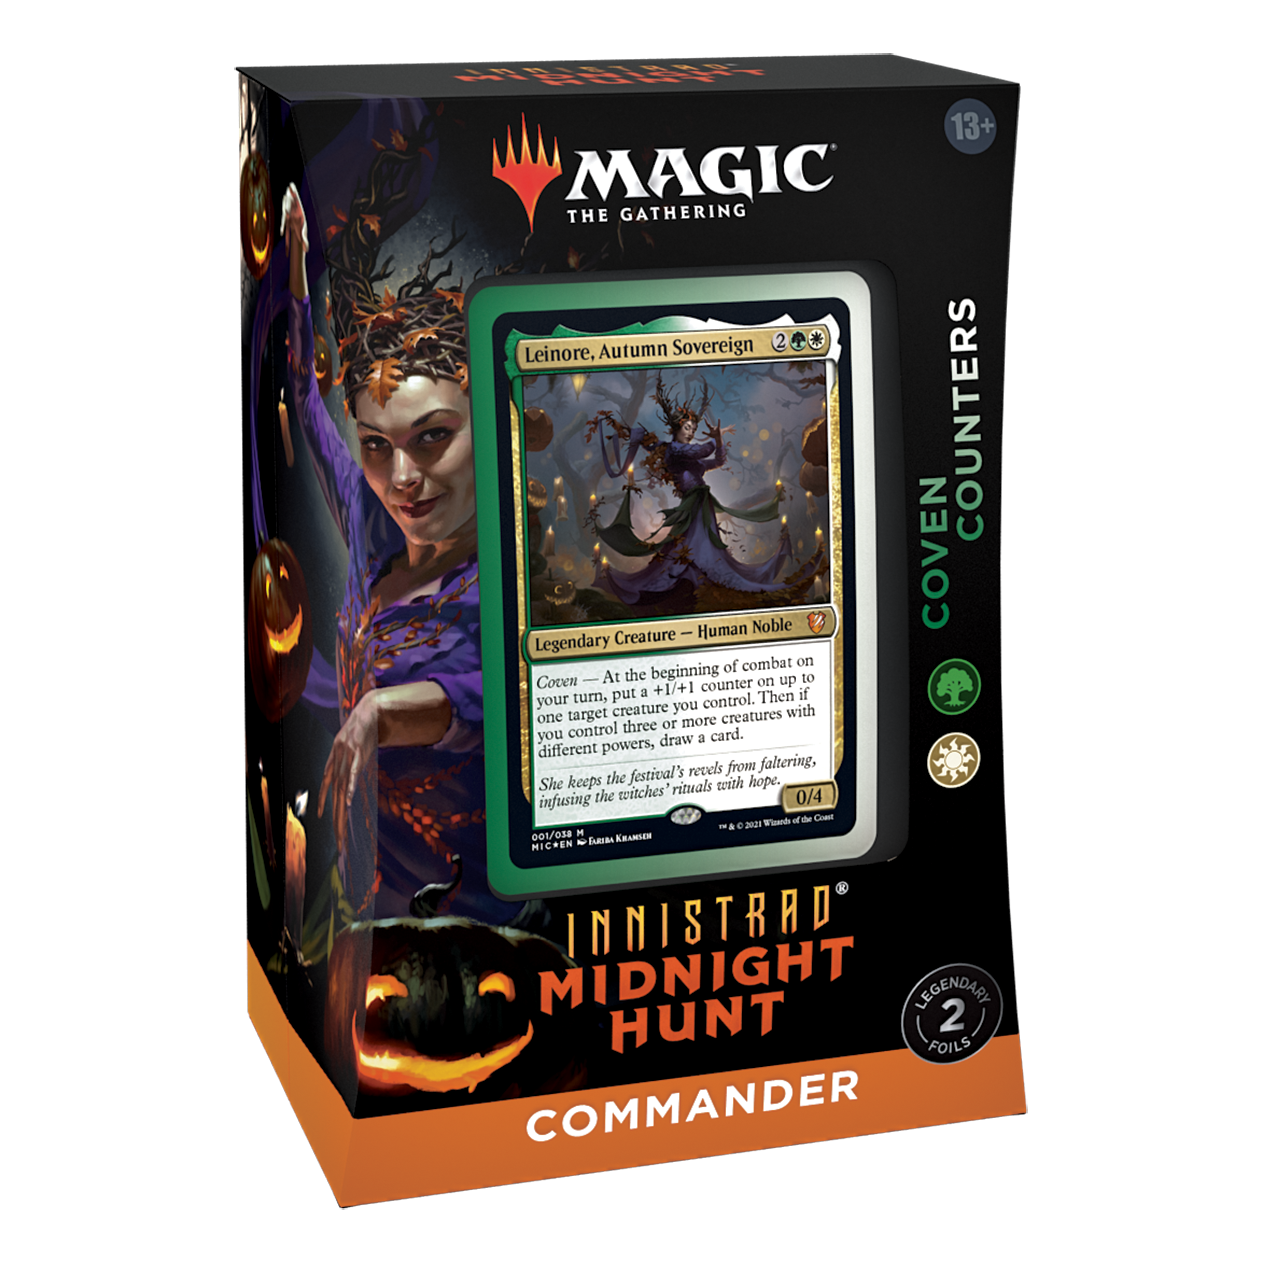 Innistrad Midnight Hunt Commander Coven Counters